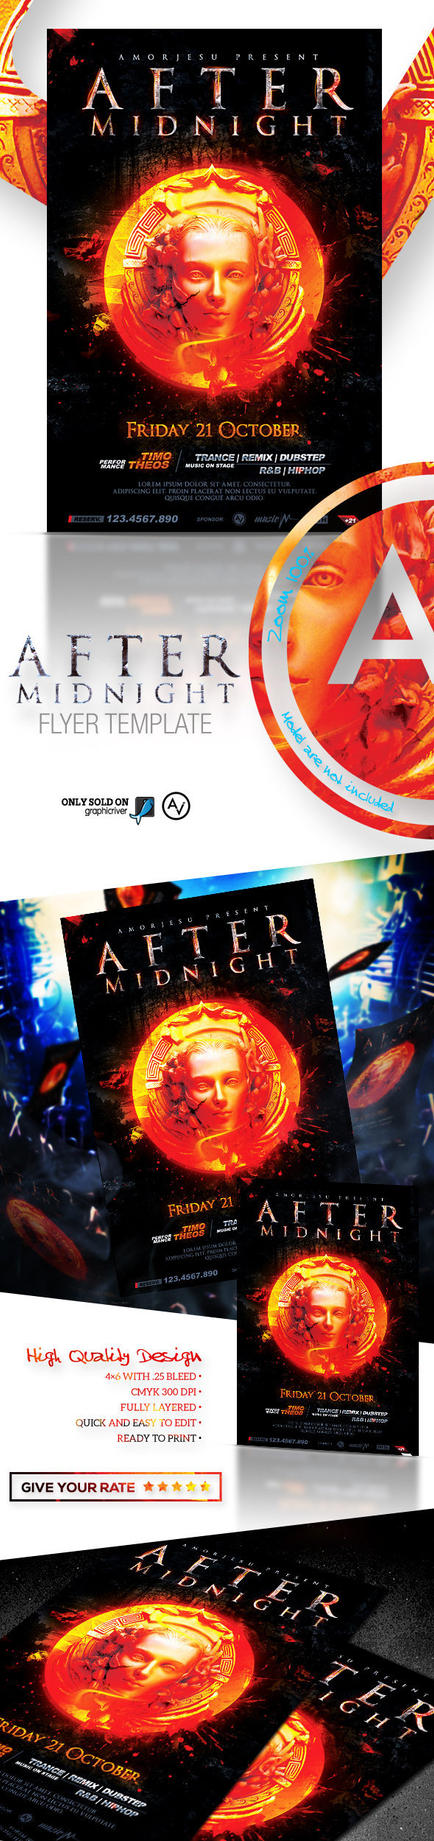 After Midnight Flyer Template by amorjesu